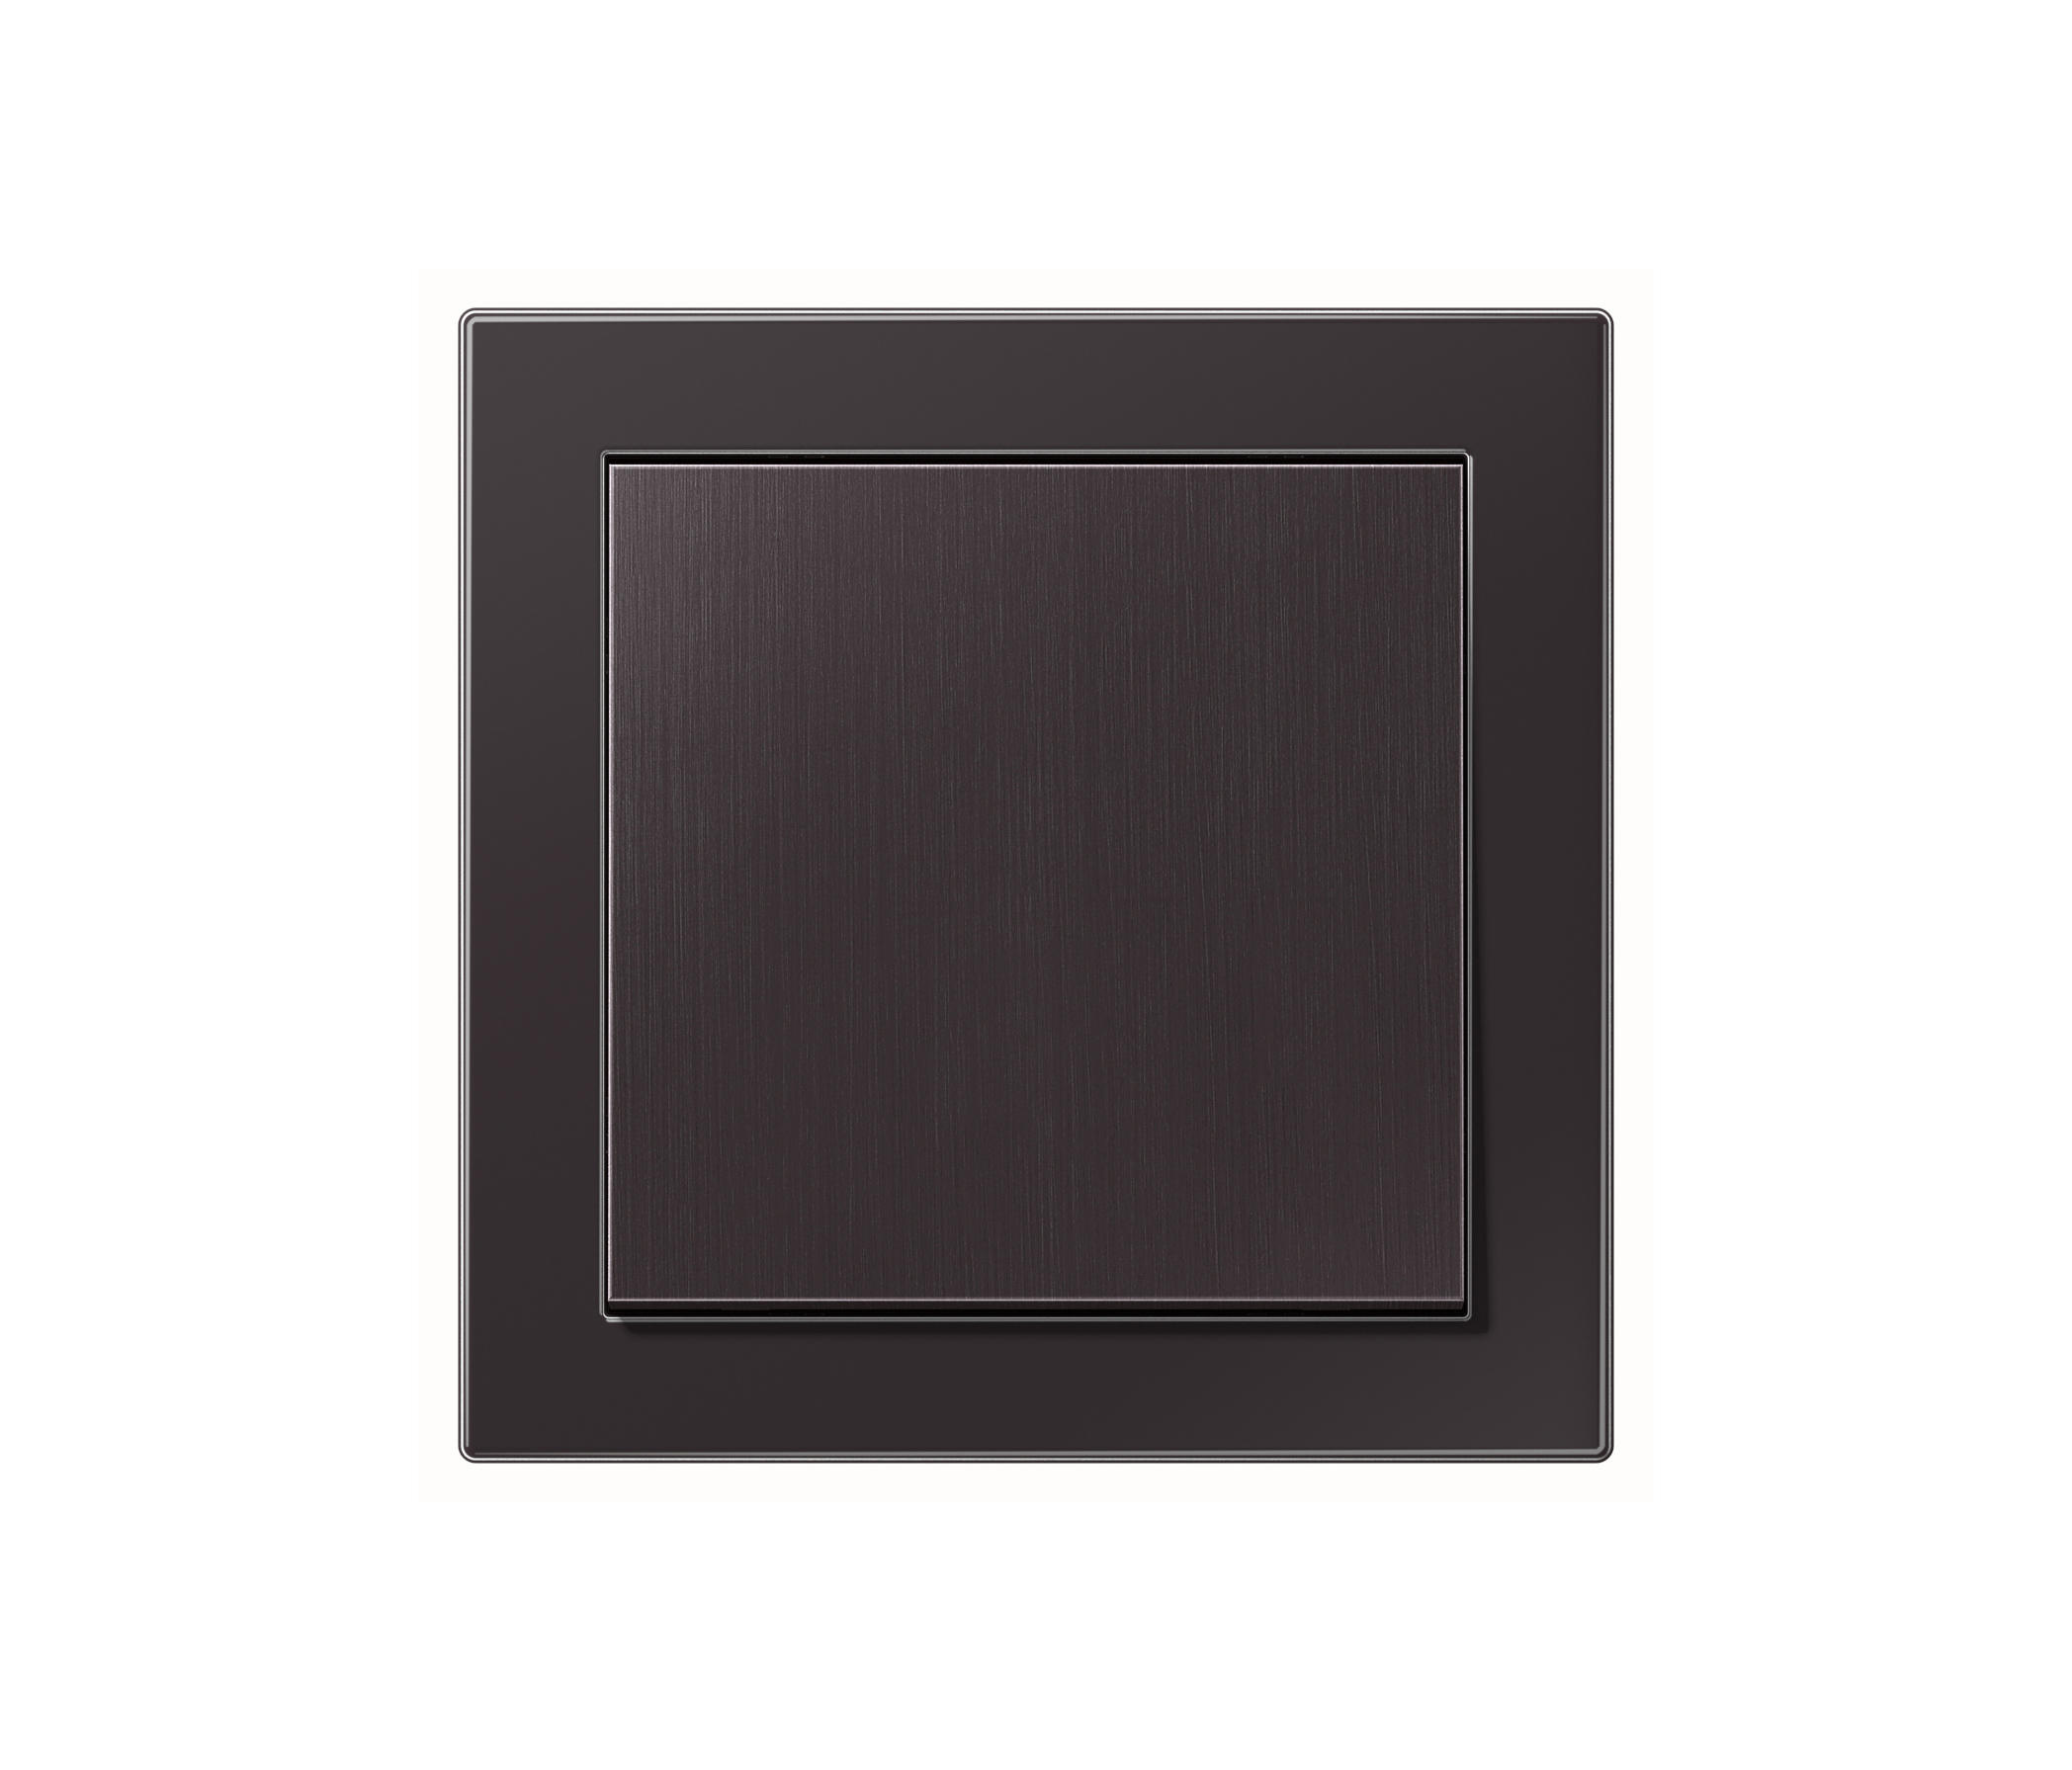 ls design brass dark switch two way switches from jung. Black Bedroom Furniture Sets. Home Design Ideas